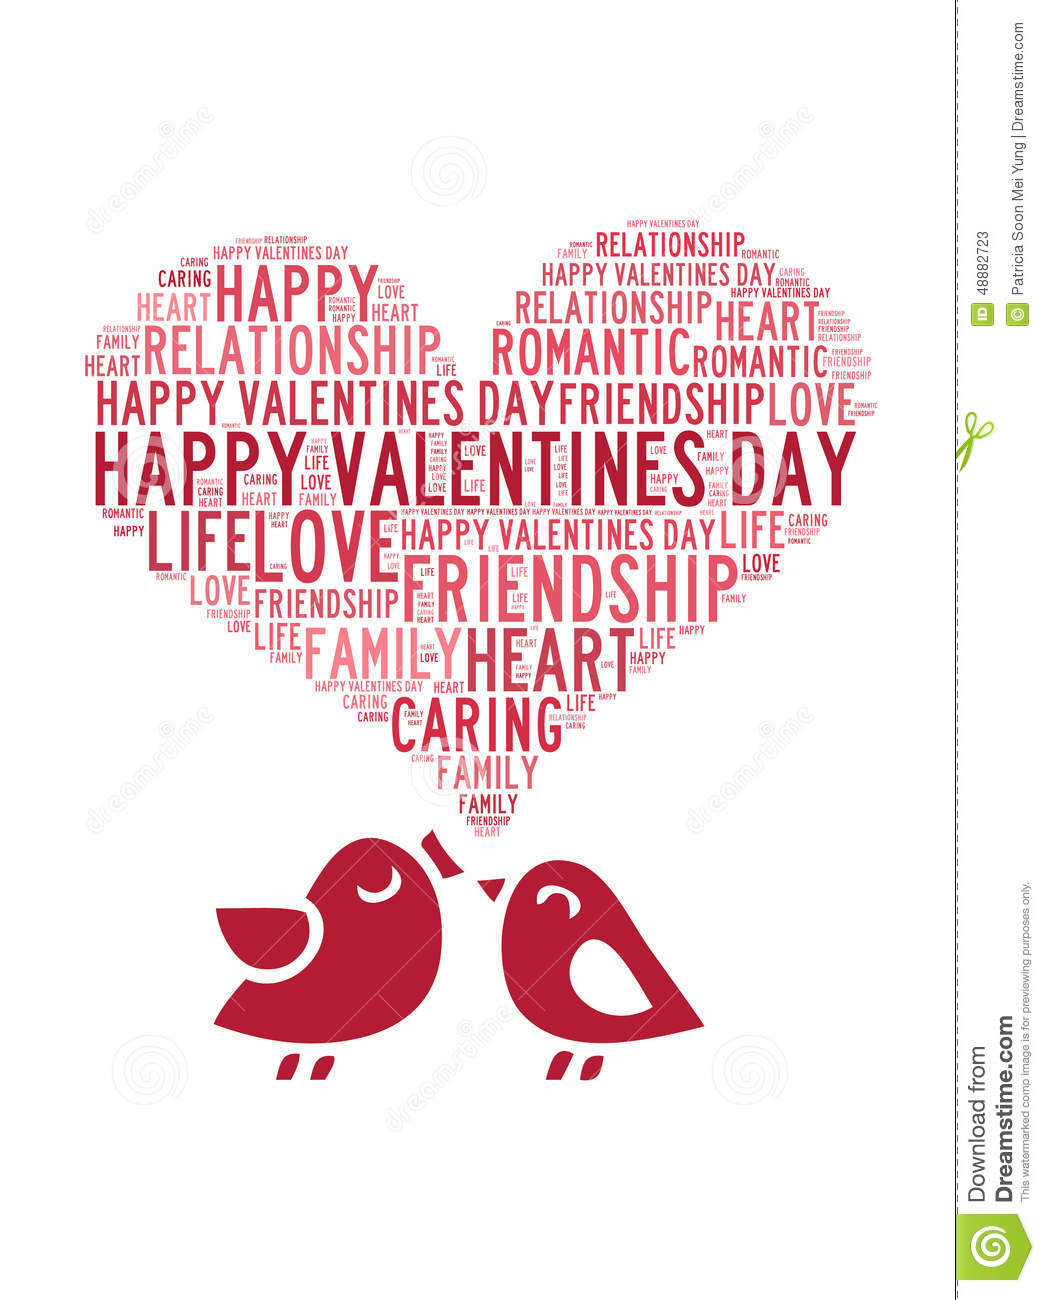 Happy Valentines Day Love Beautiful Card With Cute Love Couple Birds